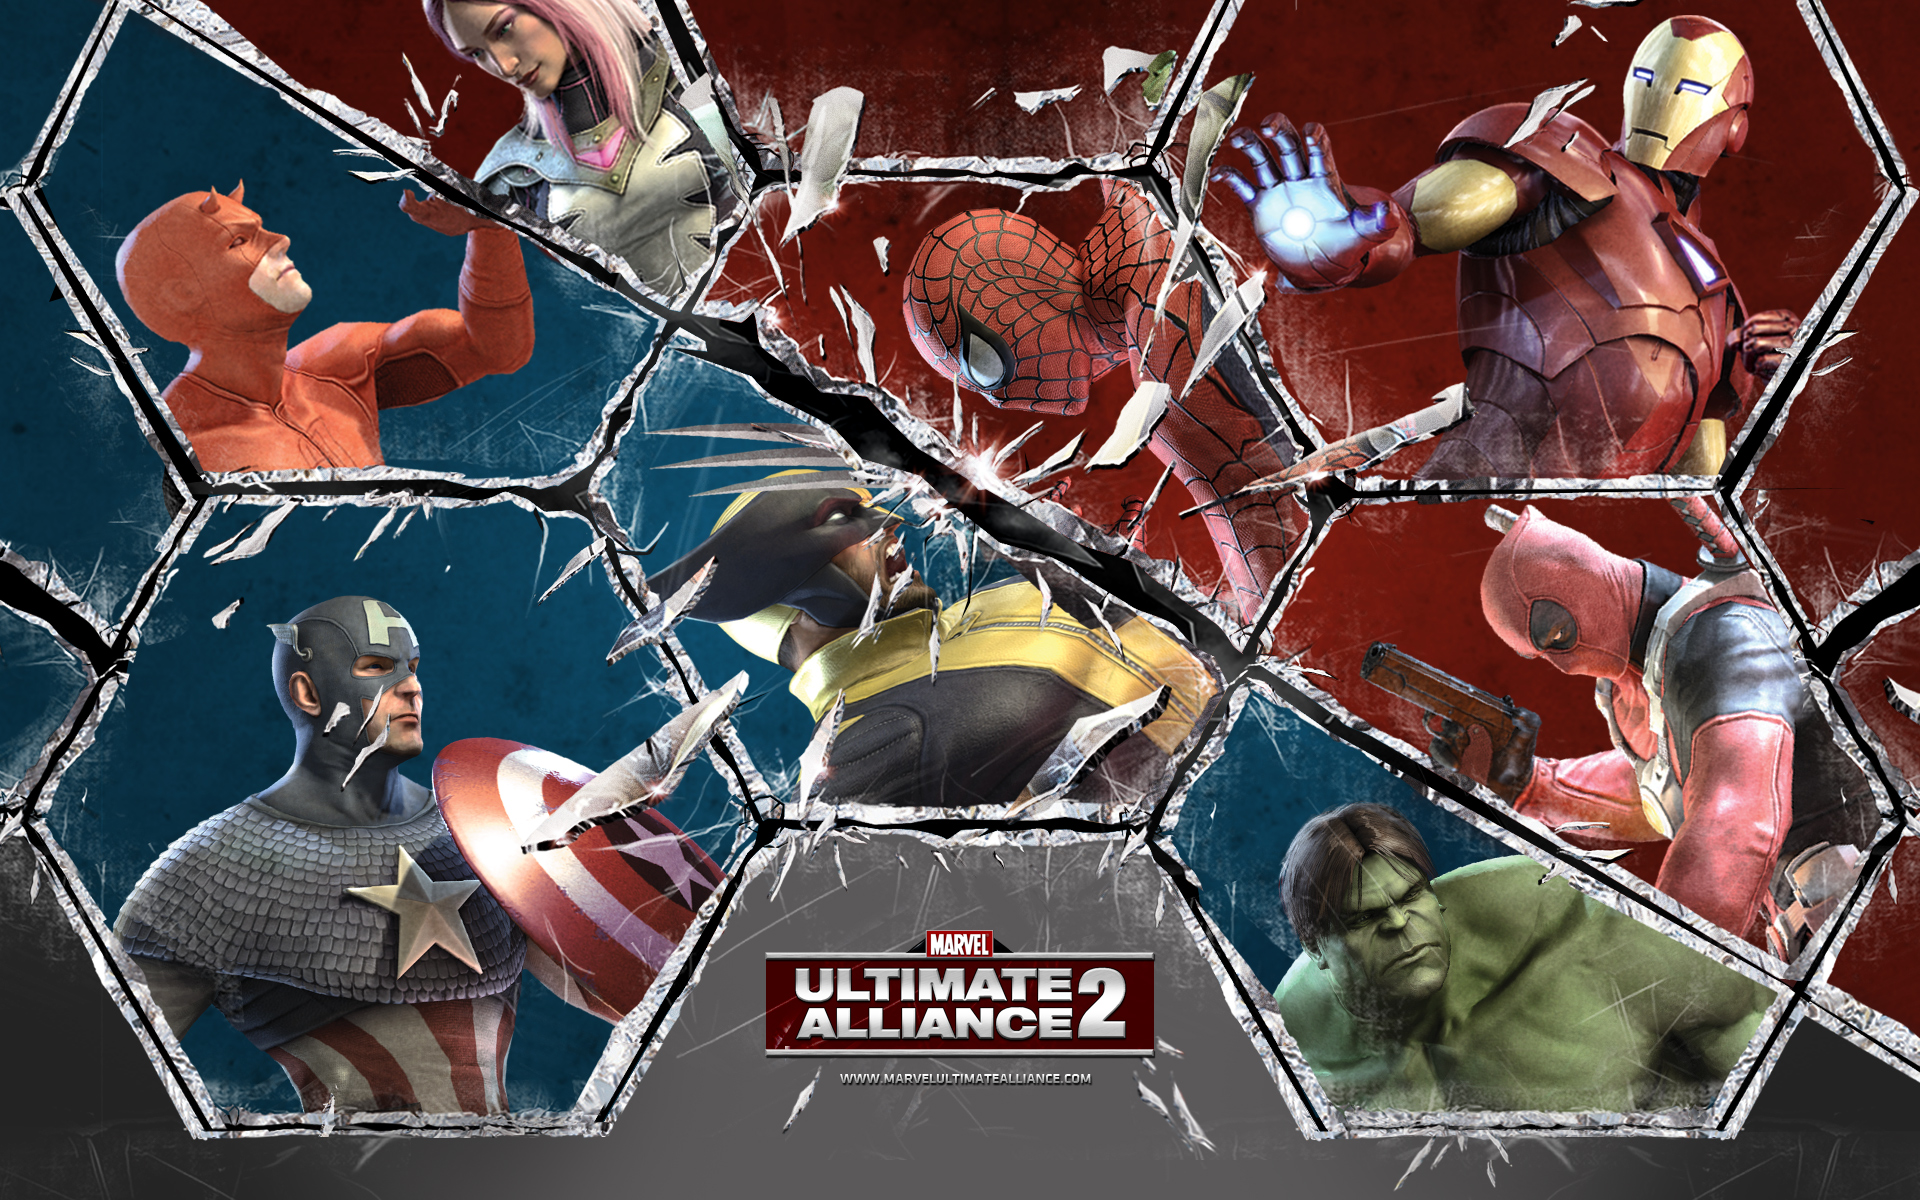 wallpaper #1 Wallpaper from Marvel: Ultimate Alliance 2